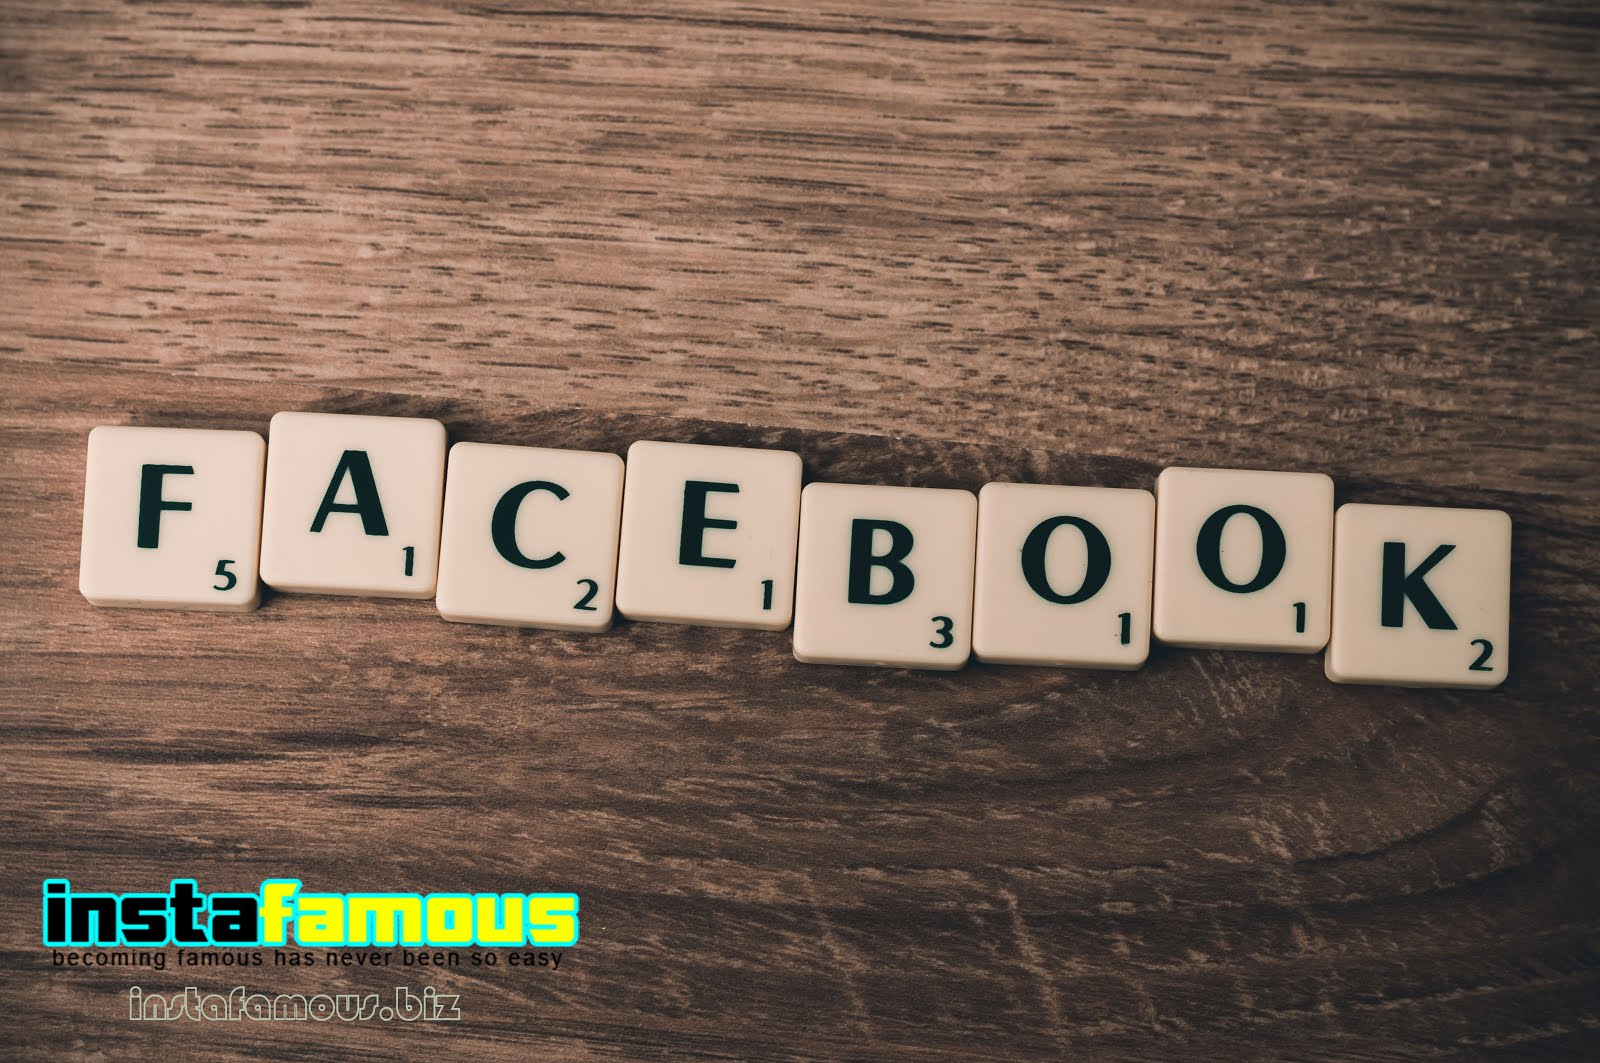 Buy Facebook Likes Cheap - Fast Delivery Guaranteed